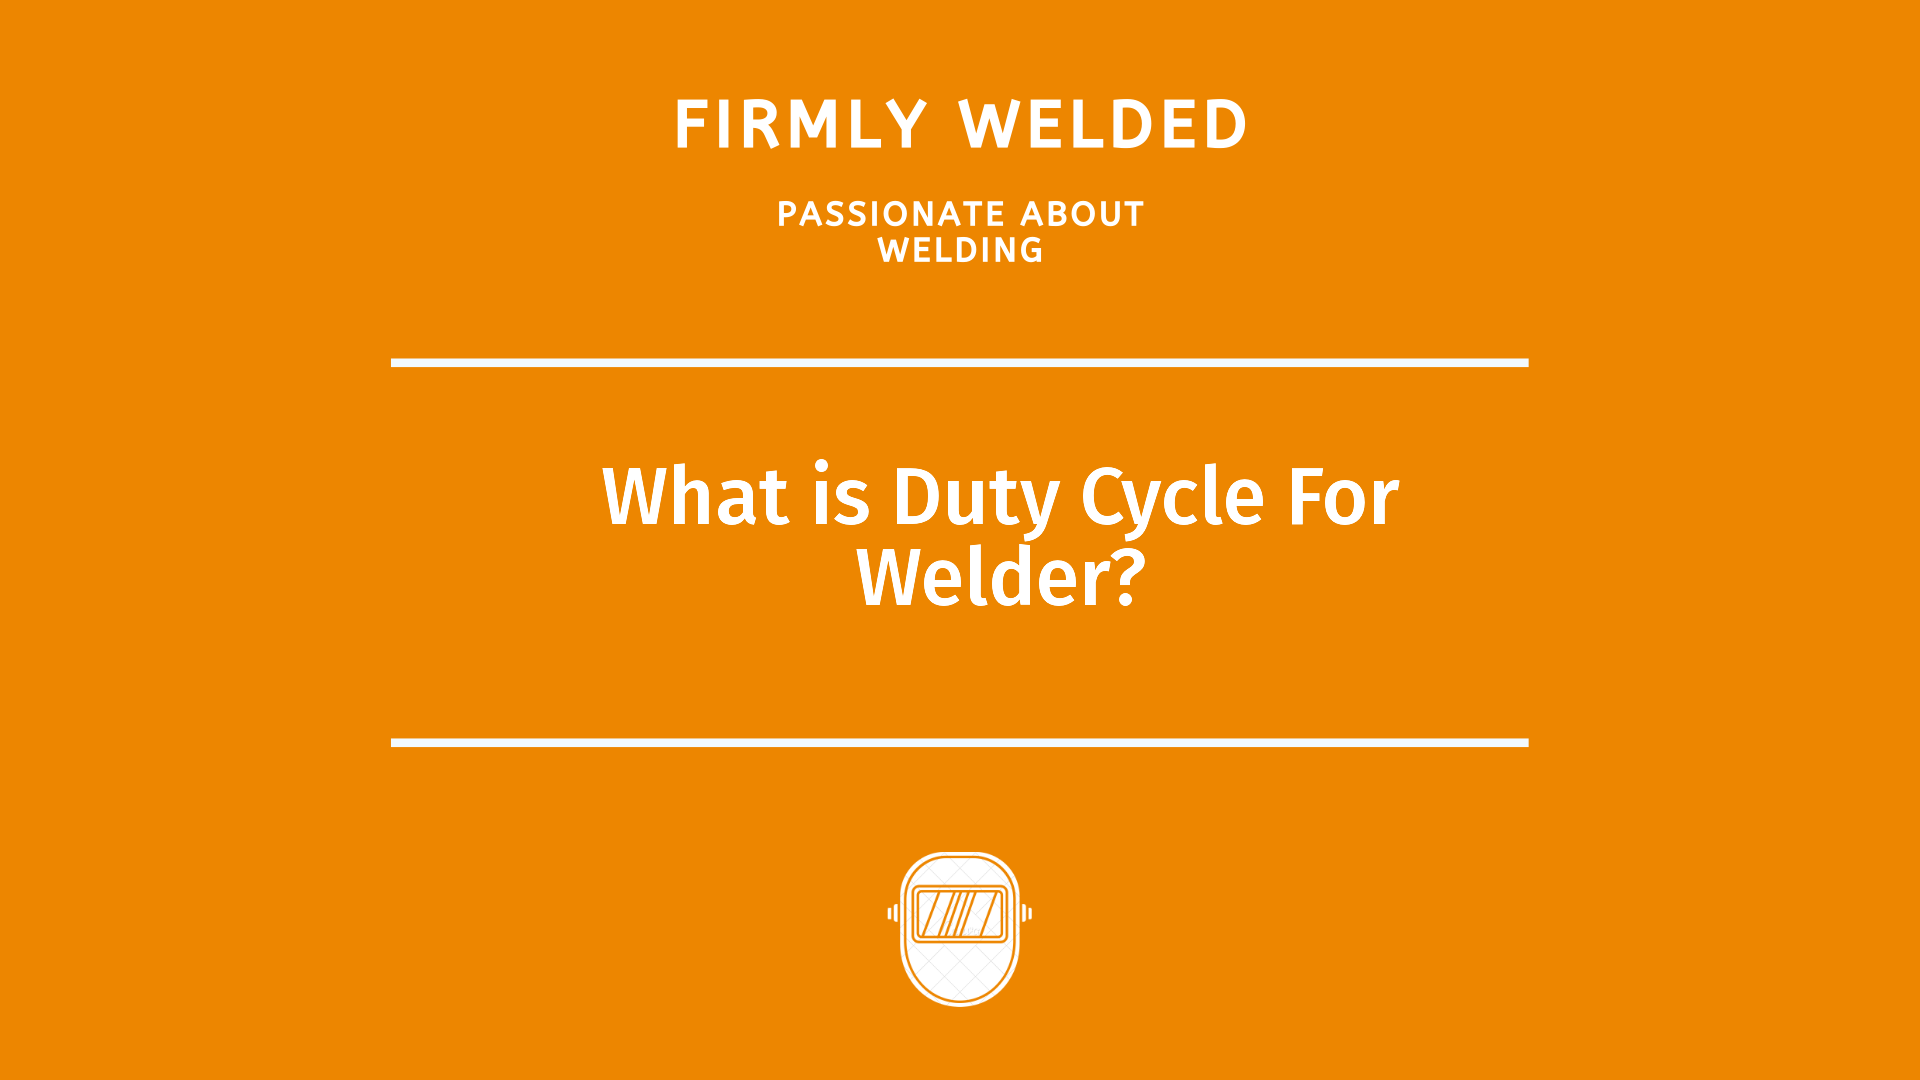 What is Duty Cycle For Welder?